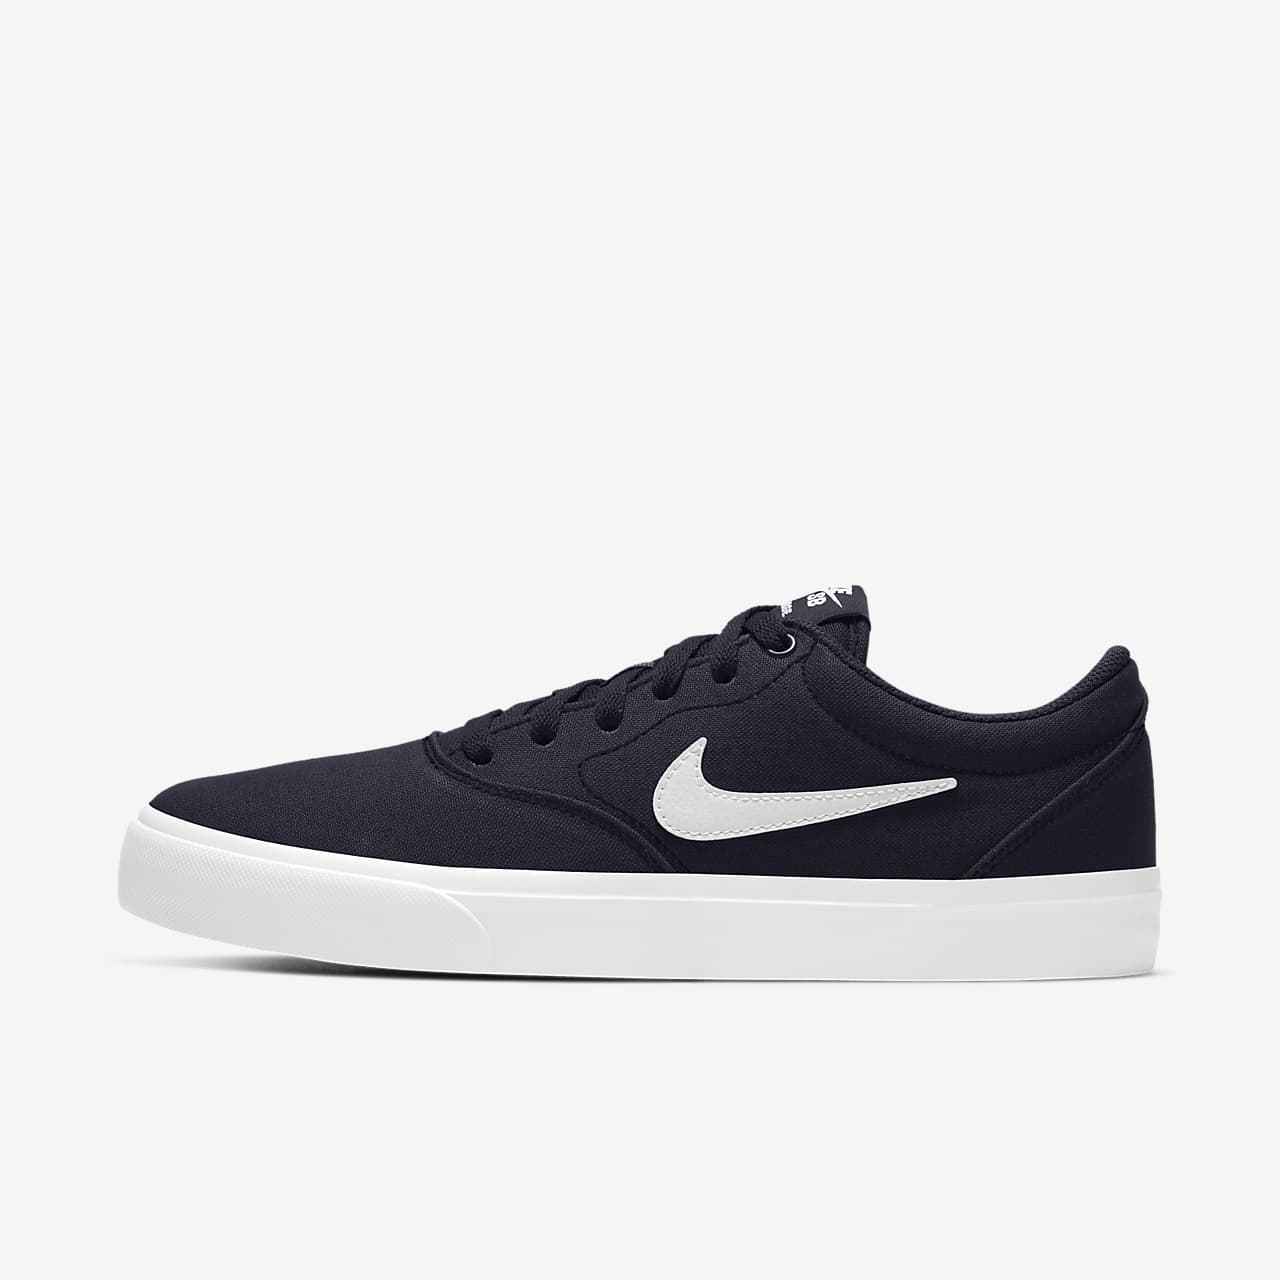 Chaussure de skateboard Nike SB Charge Canvas pour Homme